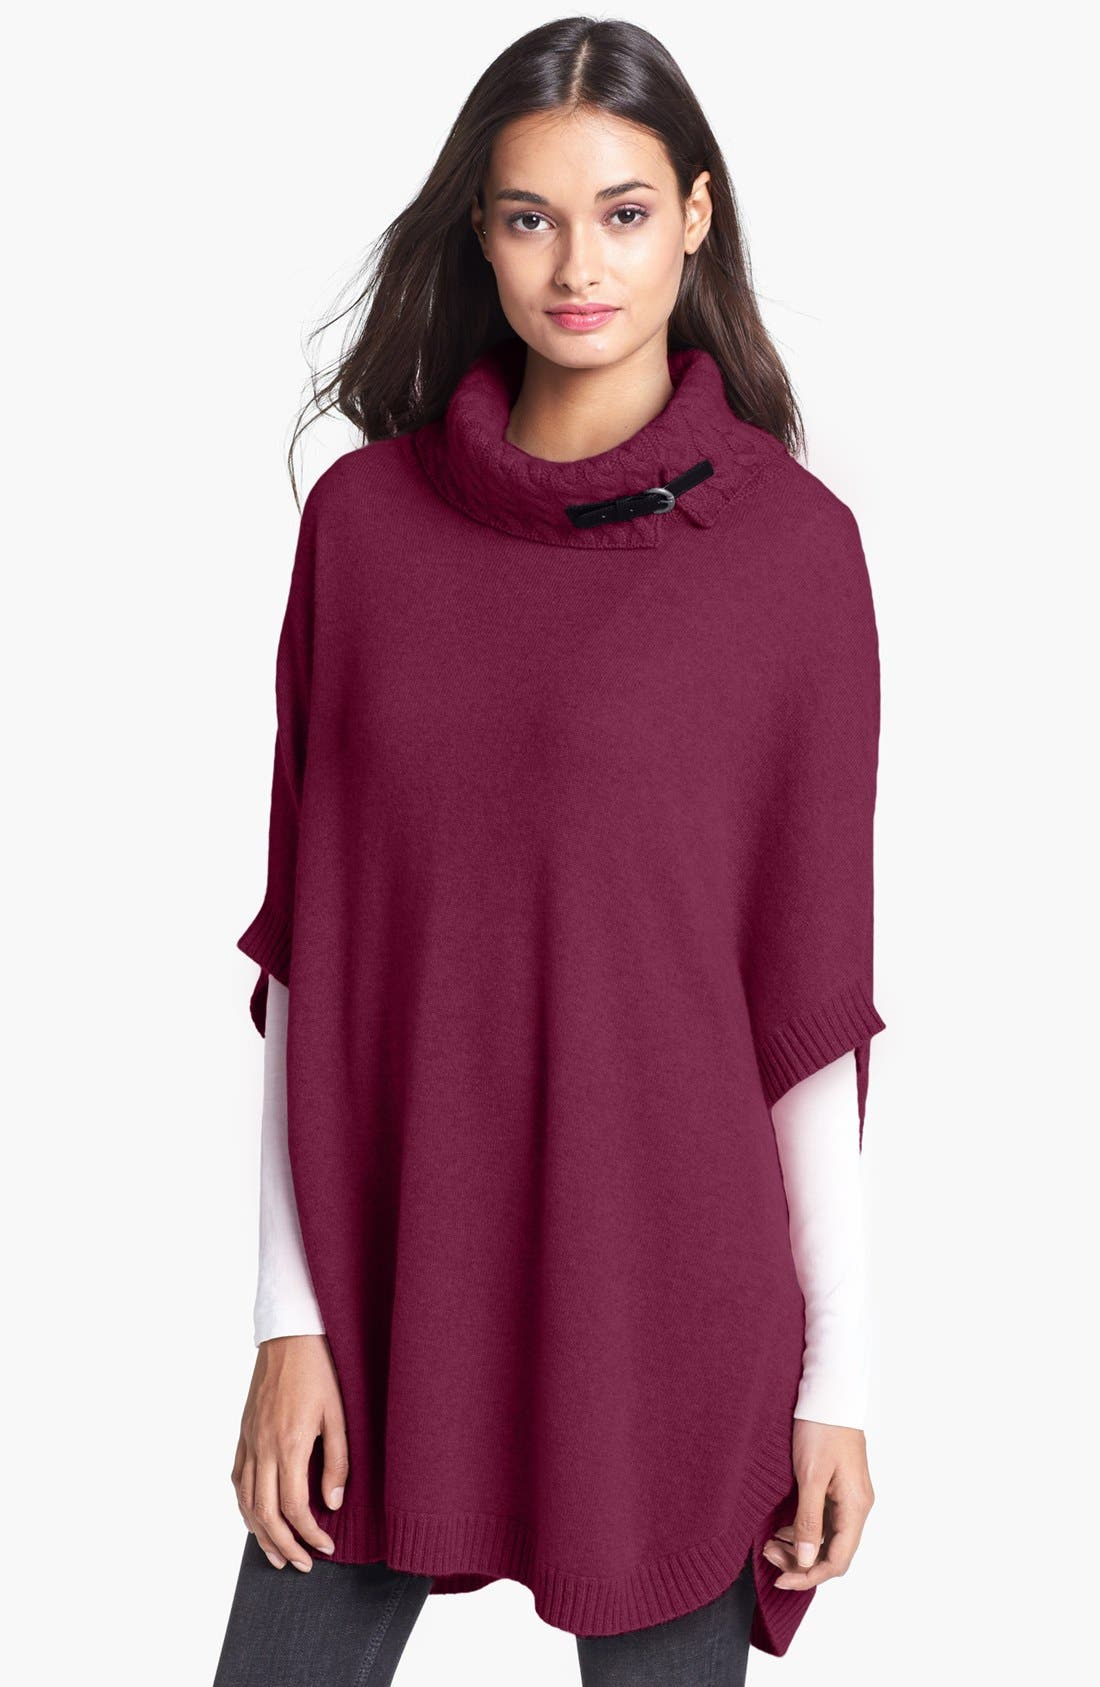 Alternate Image 1 Selected - Nordstrom Cashmere Turtleneck Topper (Special Purchase)